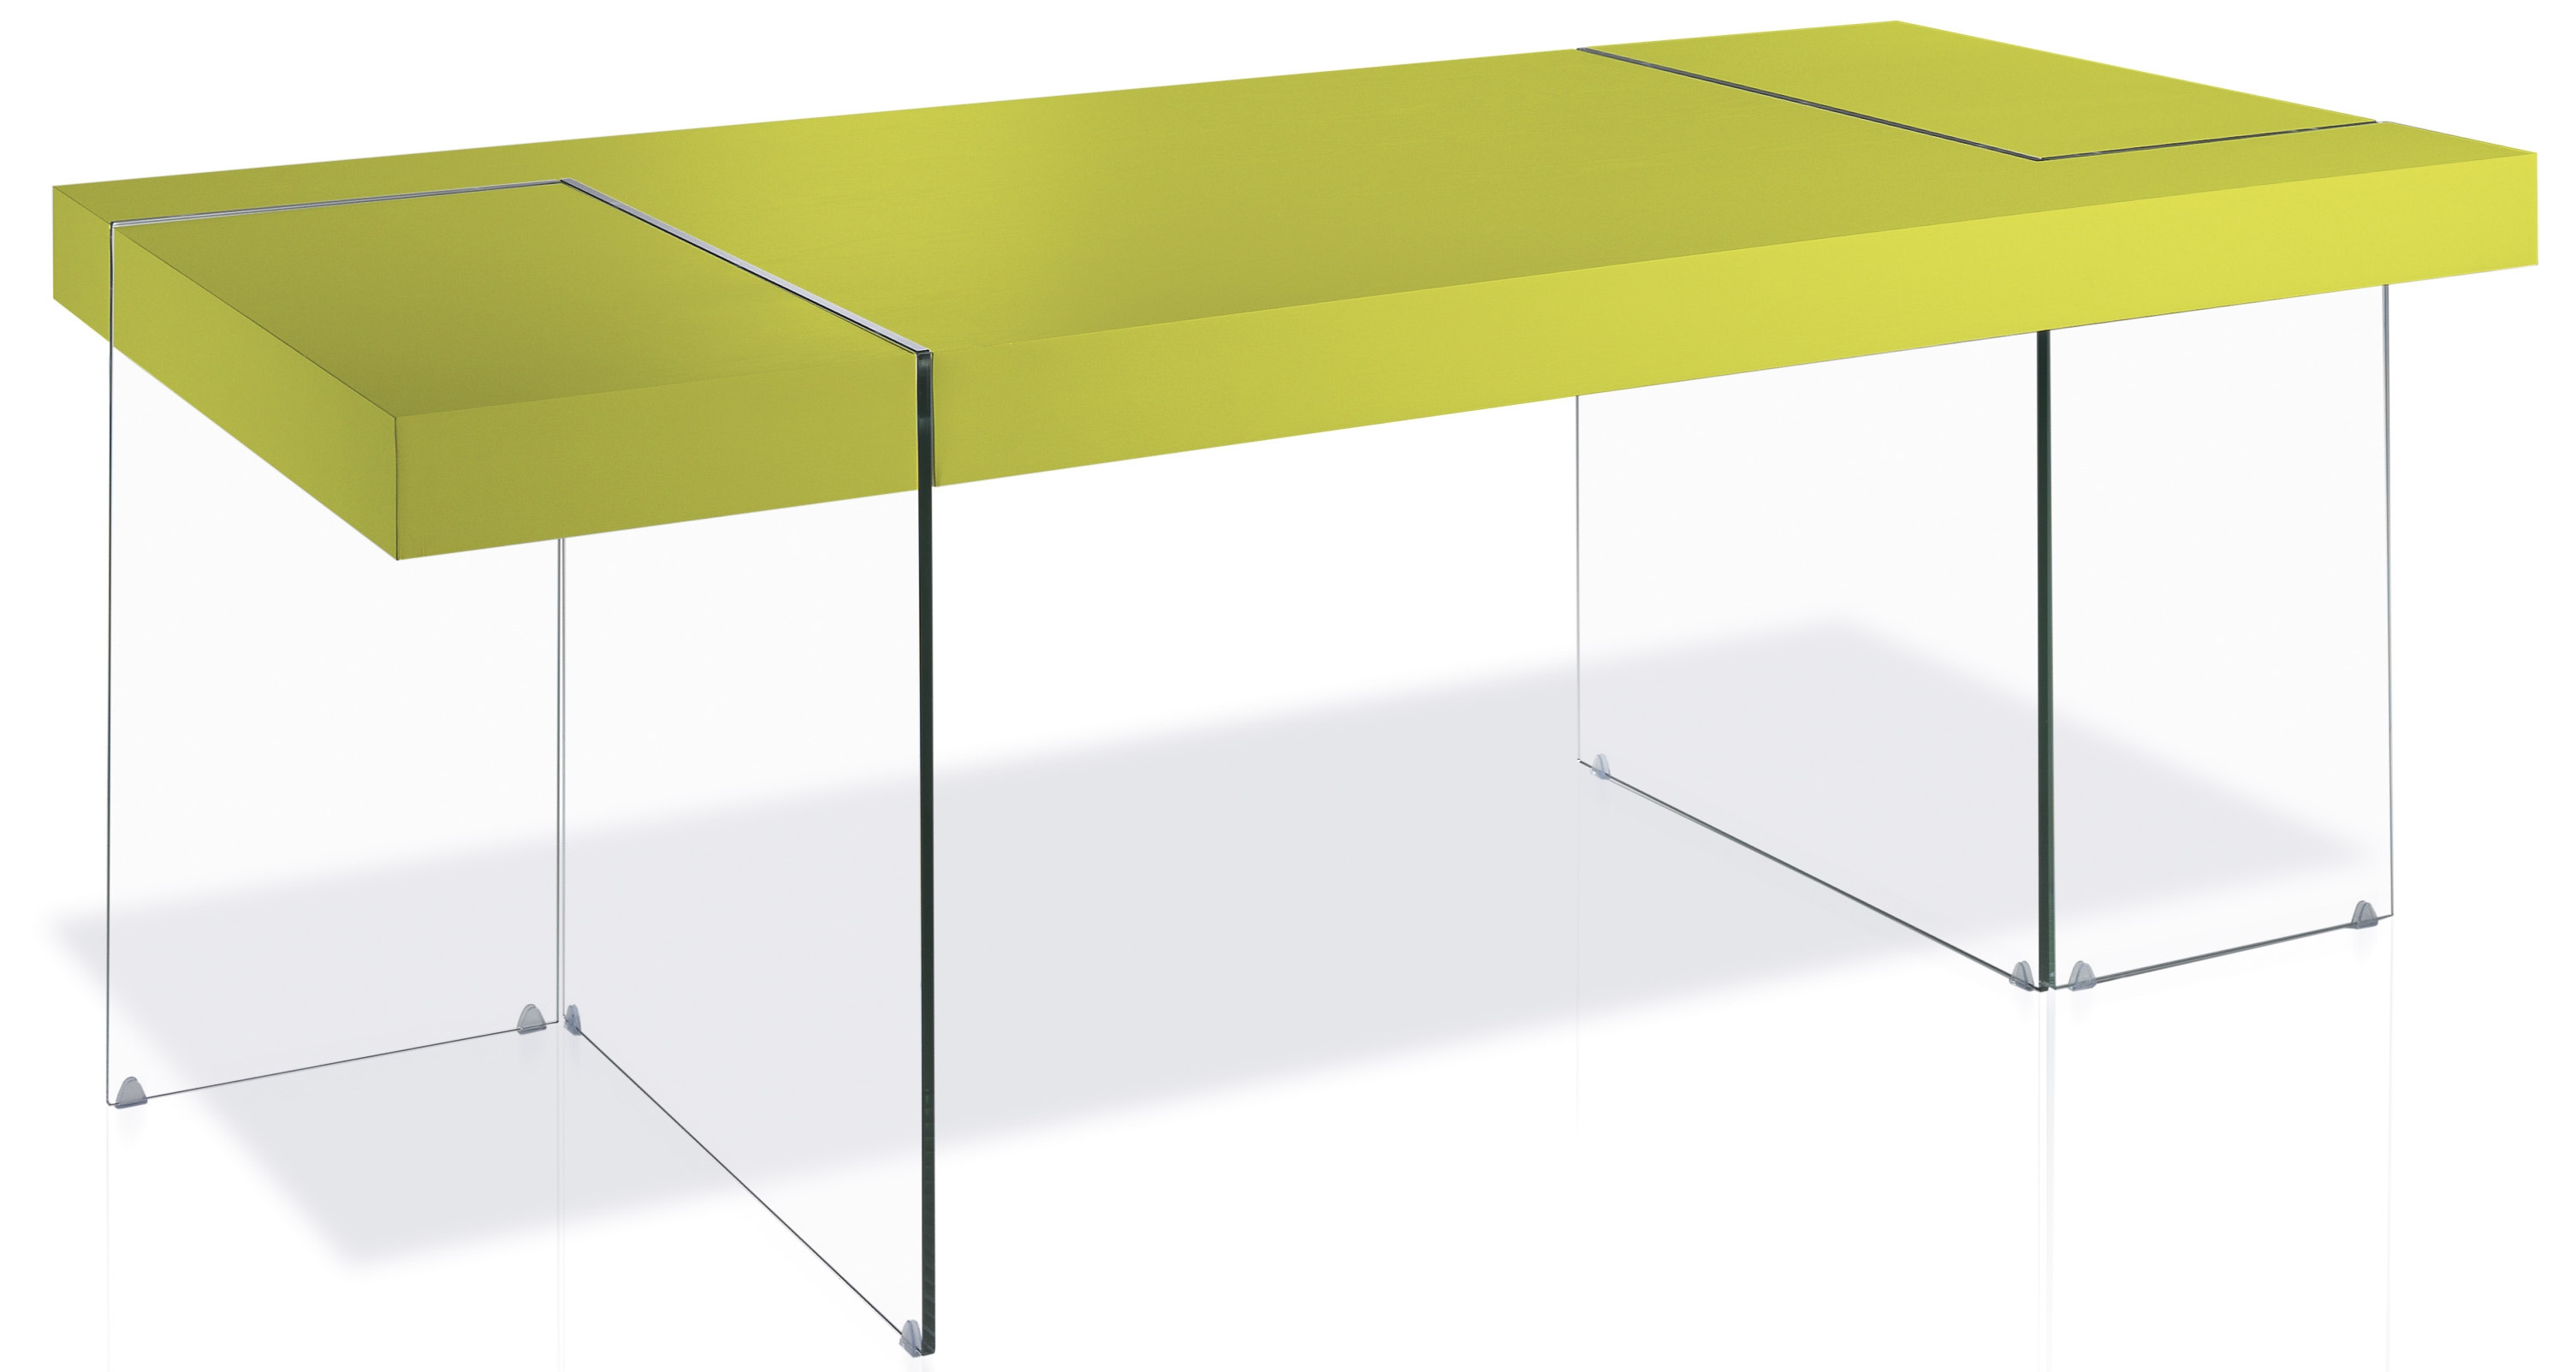 Table rectangulaire design pistache cubique - Table rectangulaire design ...